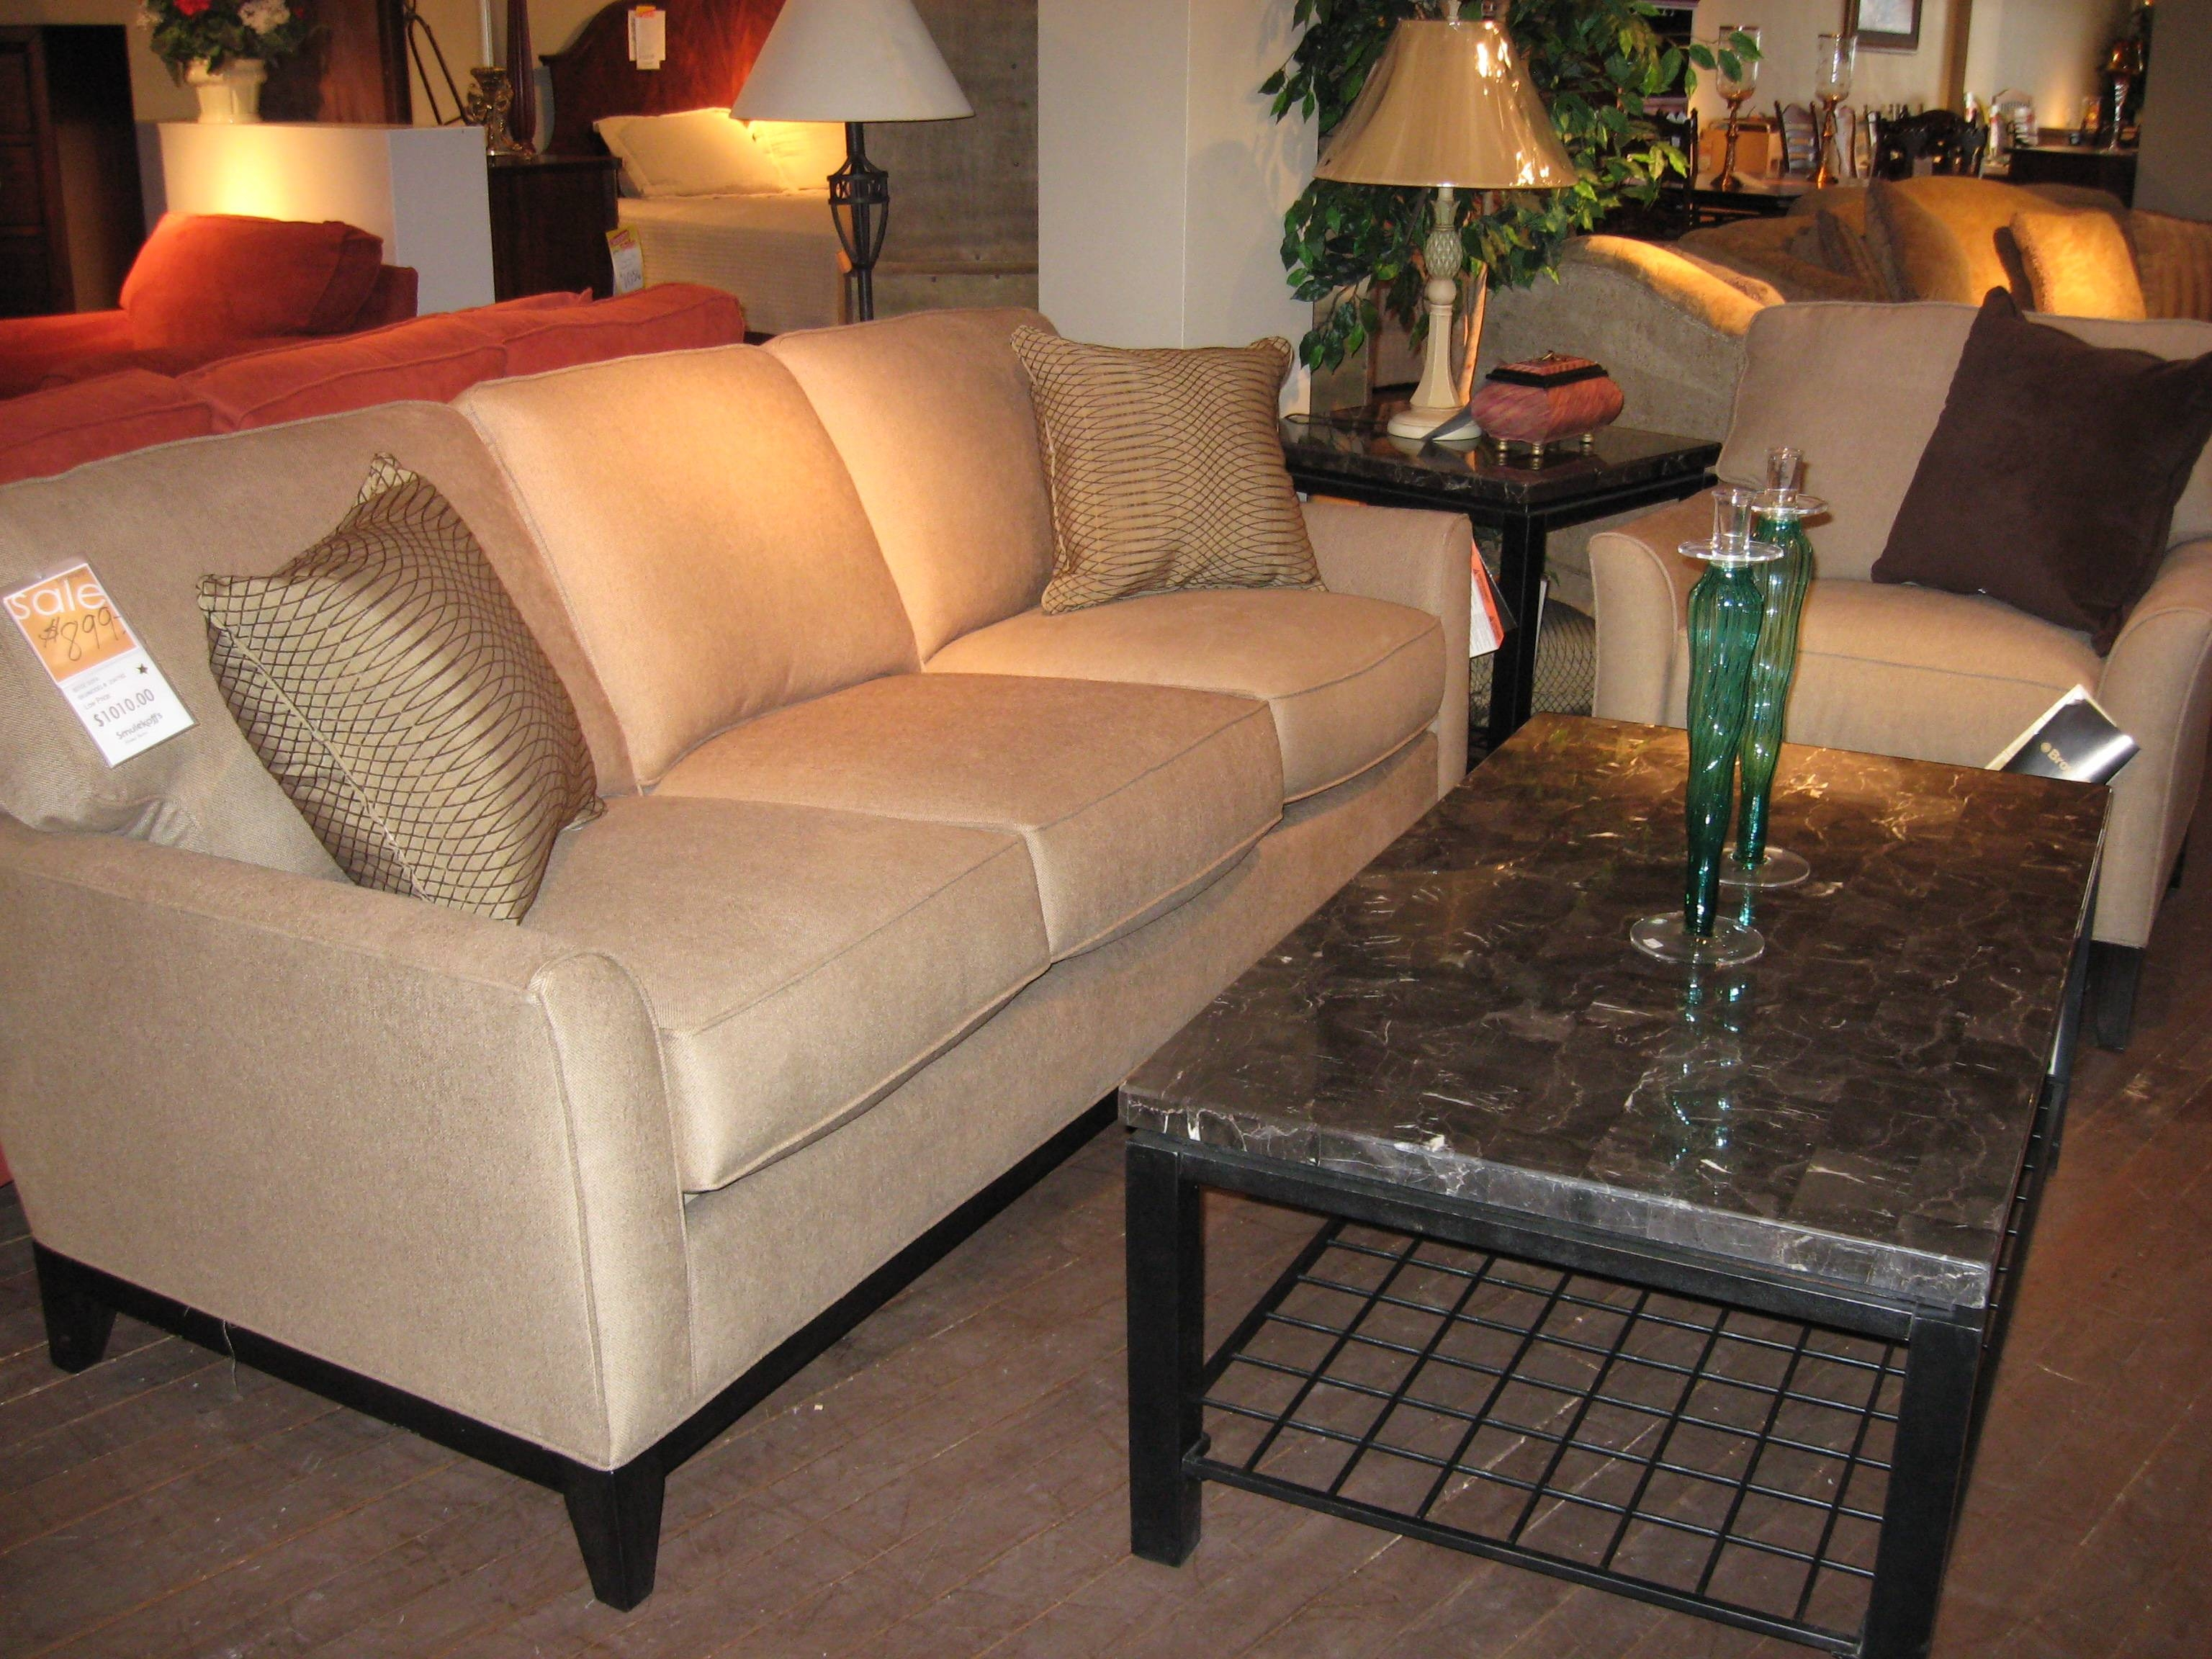 Broyhill – Smulekoff's Home Store regarding Broyhill Perspectives Sofas (Image 7 of 15)